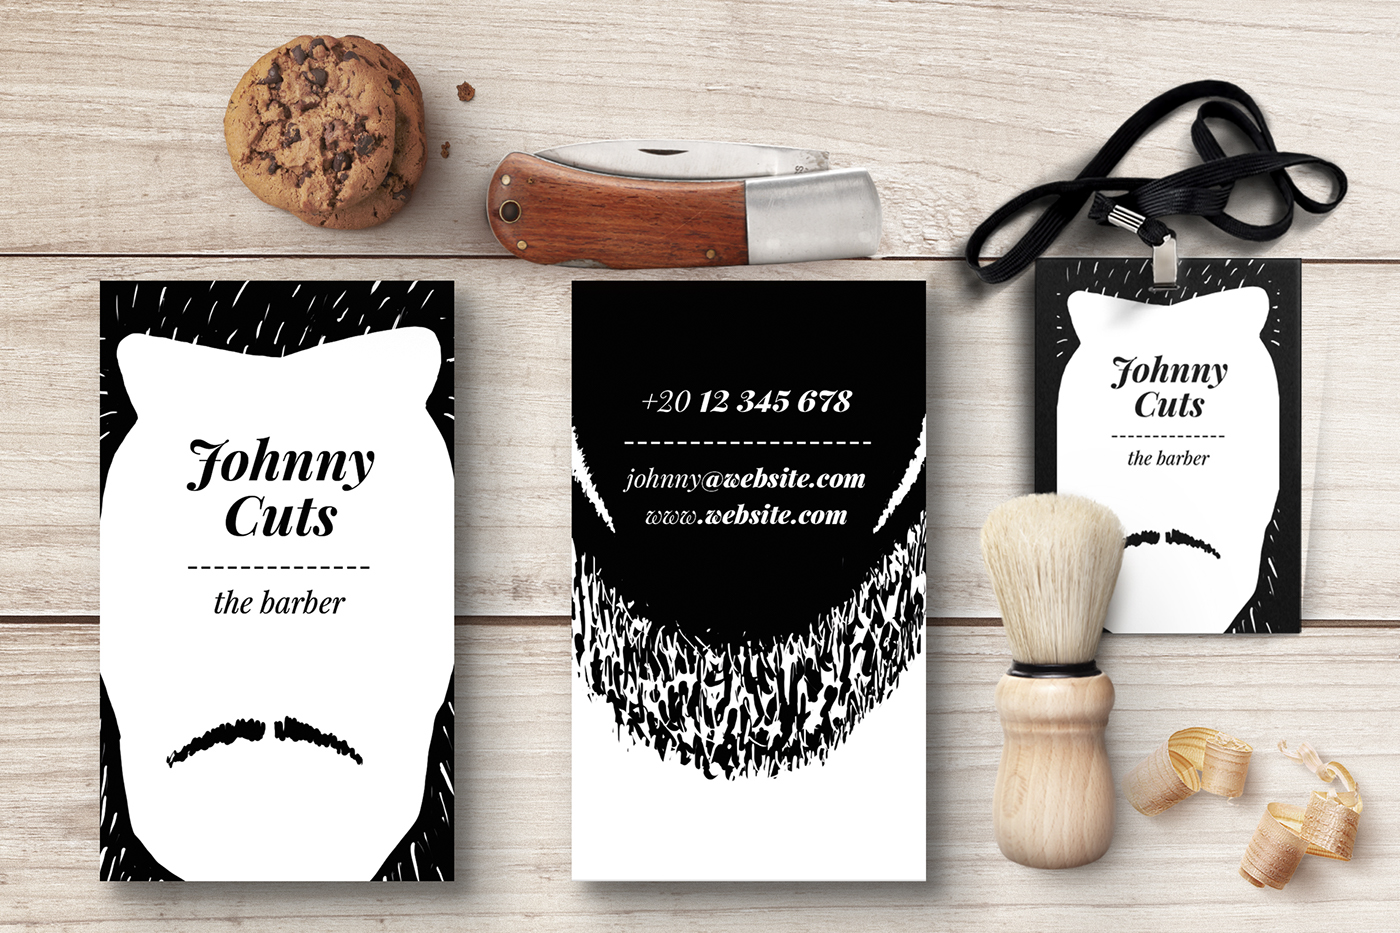 The barber business cards templates on behance choose your hairstyle and your beard then edit your name and youre done customize the business card to match your style you have 25 variations possible friedricerecipe Choice Image